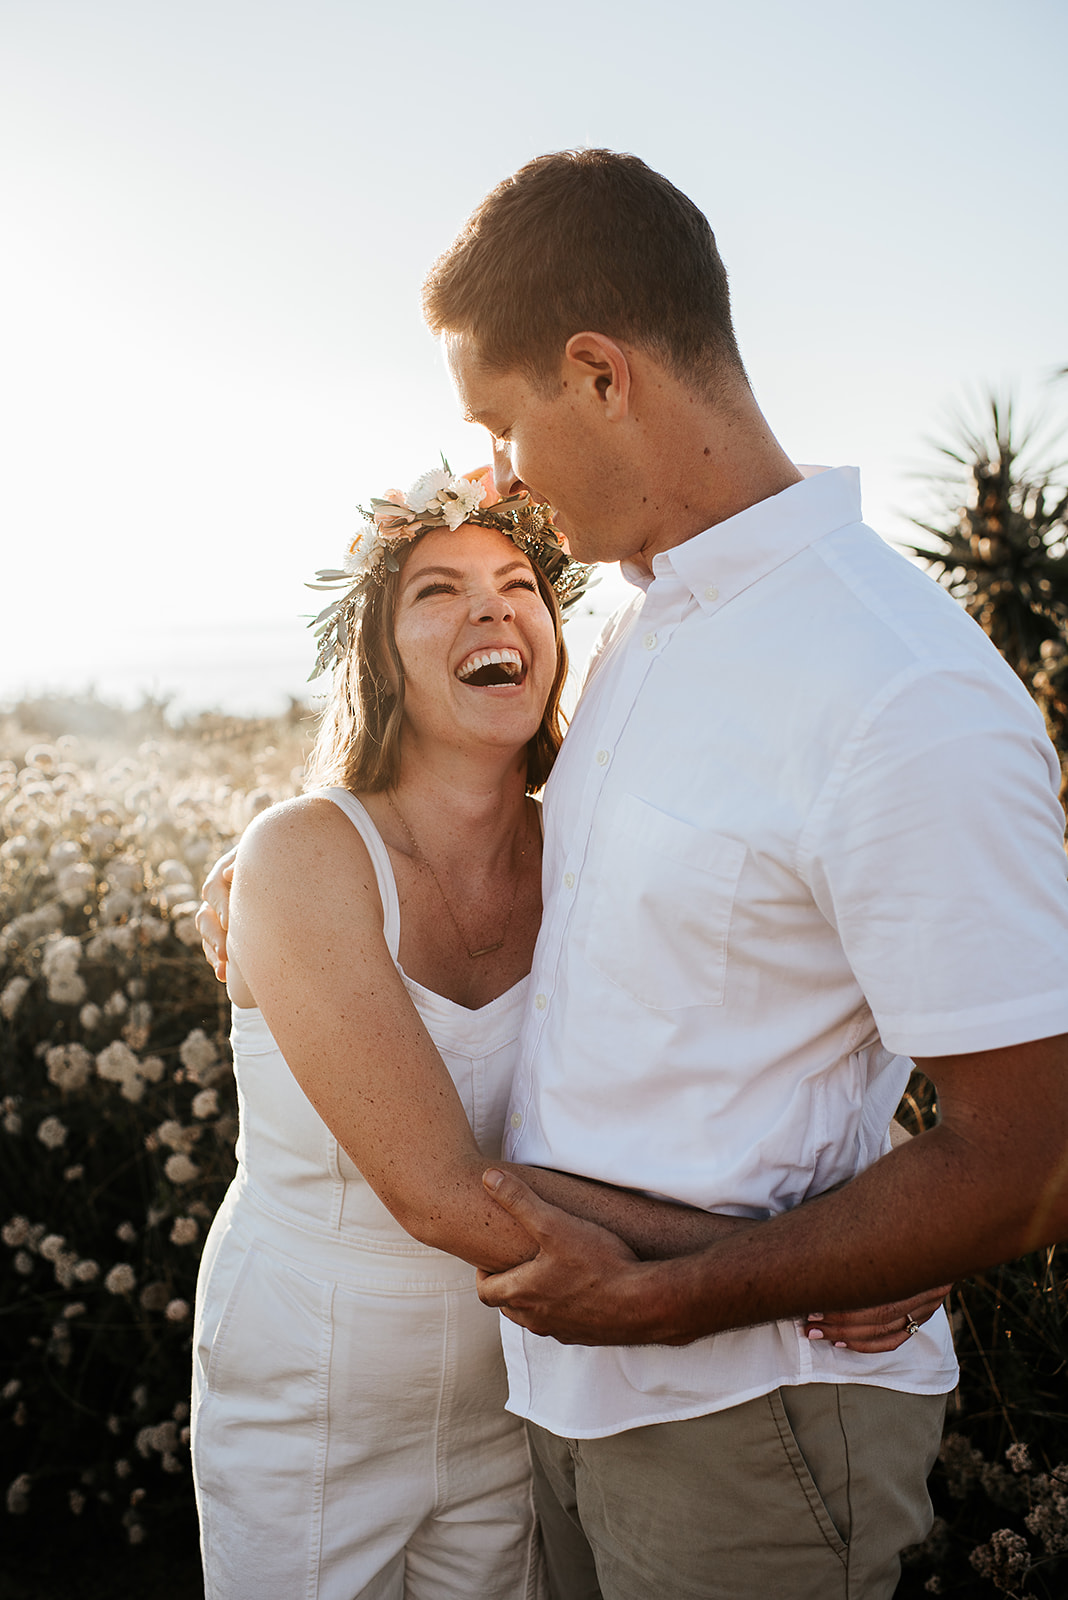 SoCal_Standard_-_San_Diego_Engagement_Photographer_-_Modern_Candid_Destination_Photographer_-_Engagement_Session_at_Torrey_Pines_San_Diego_California_-_Grace_and_Robert-99.jpg